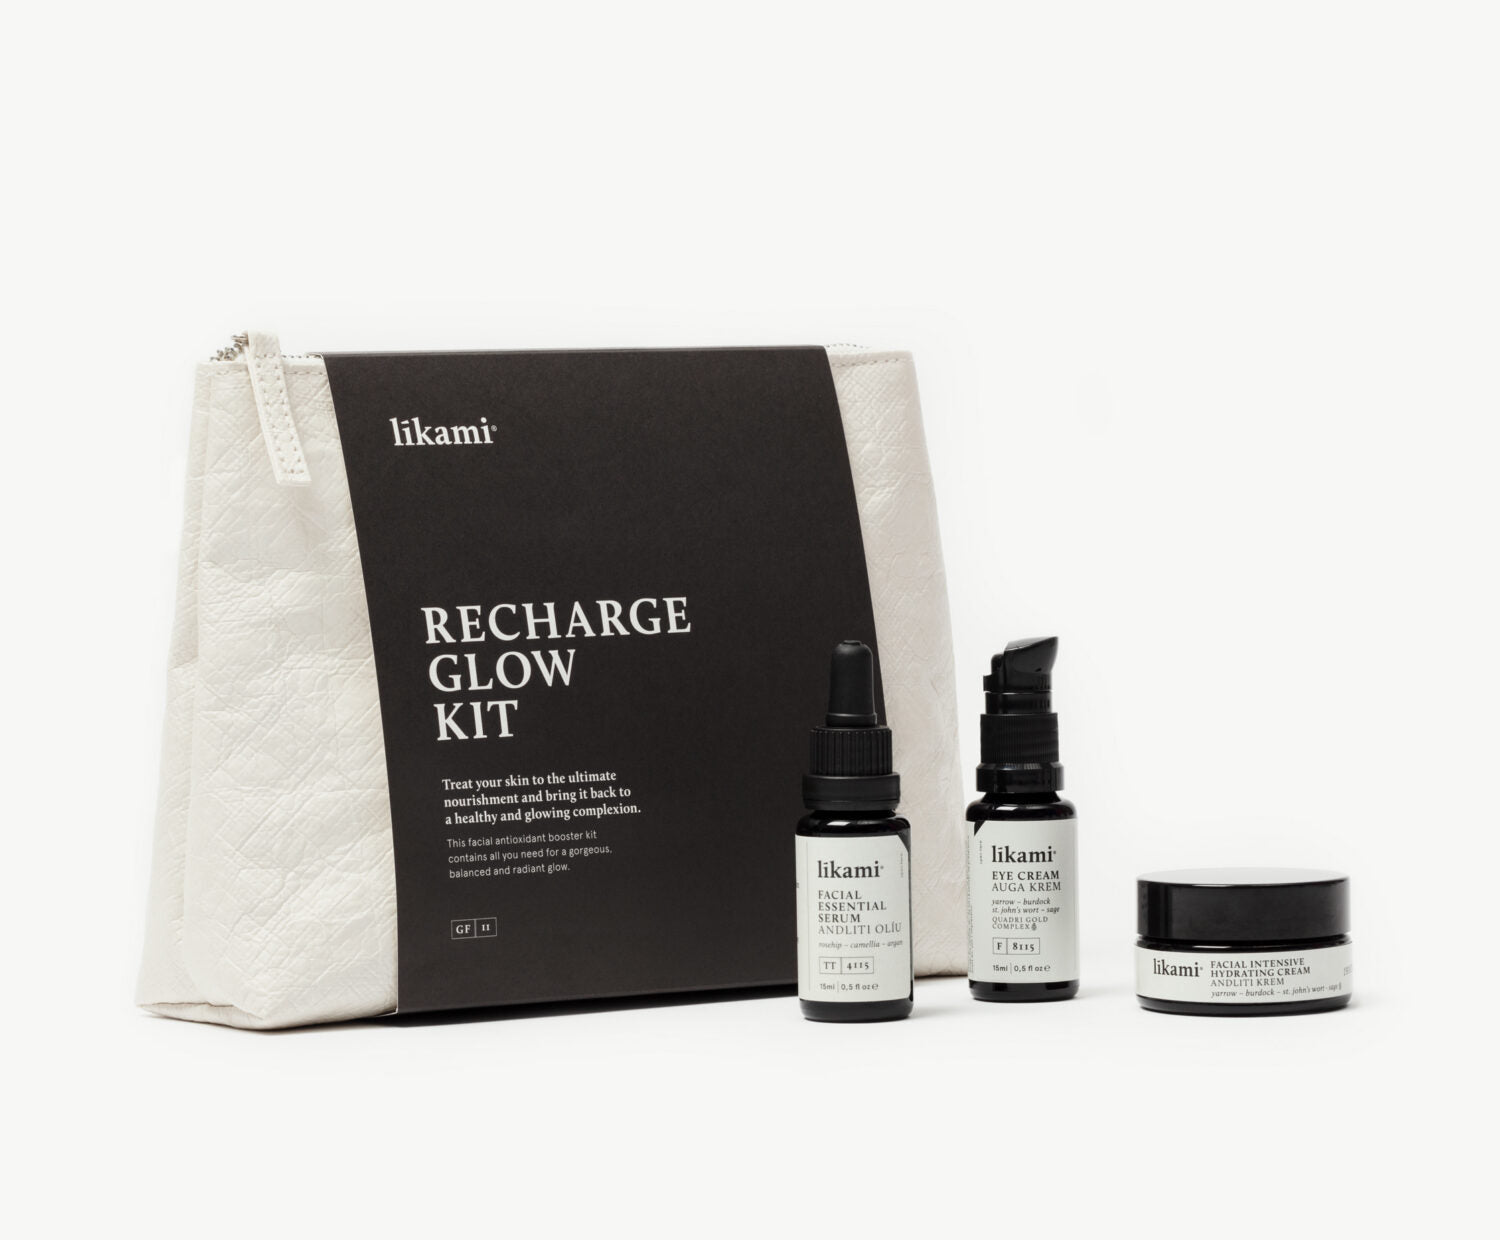 Likami - Recharge Glow kit